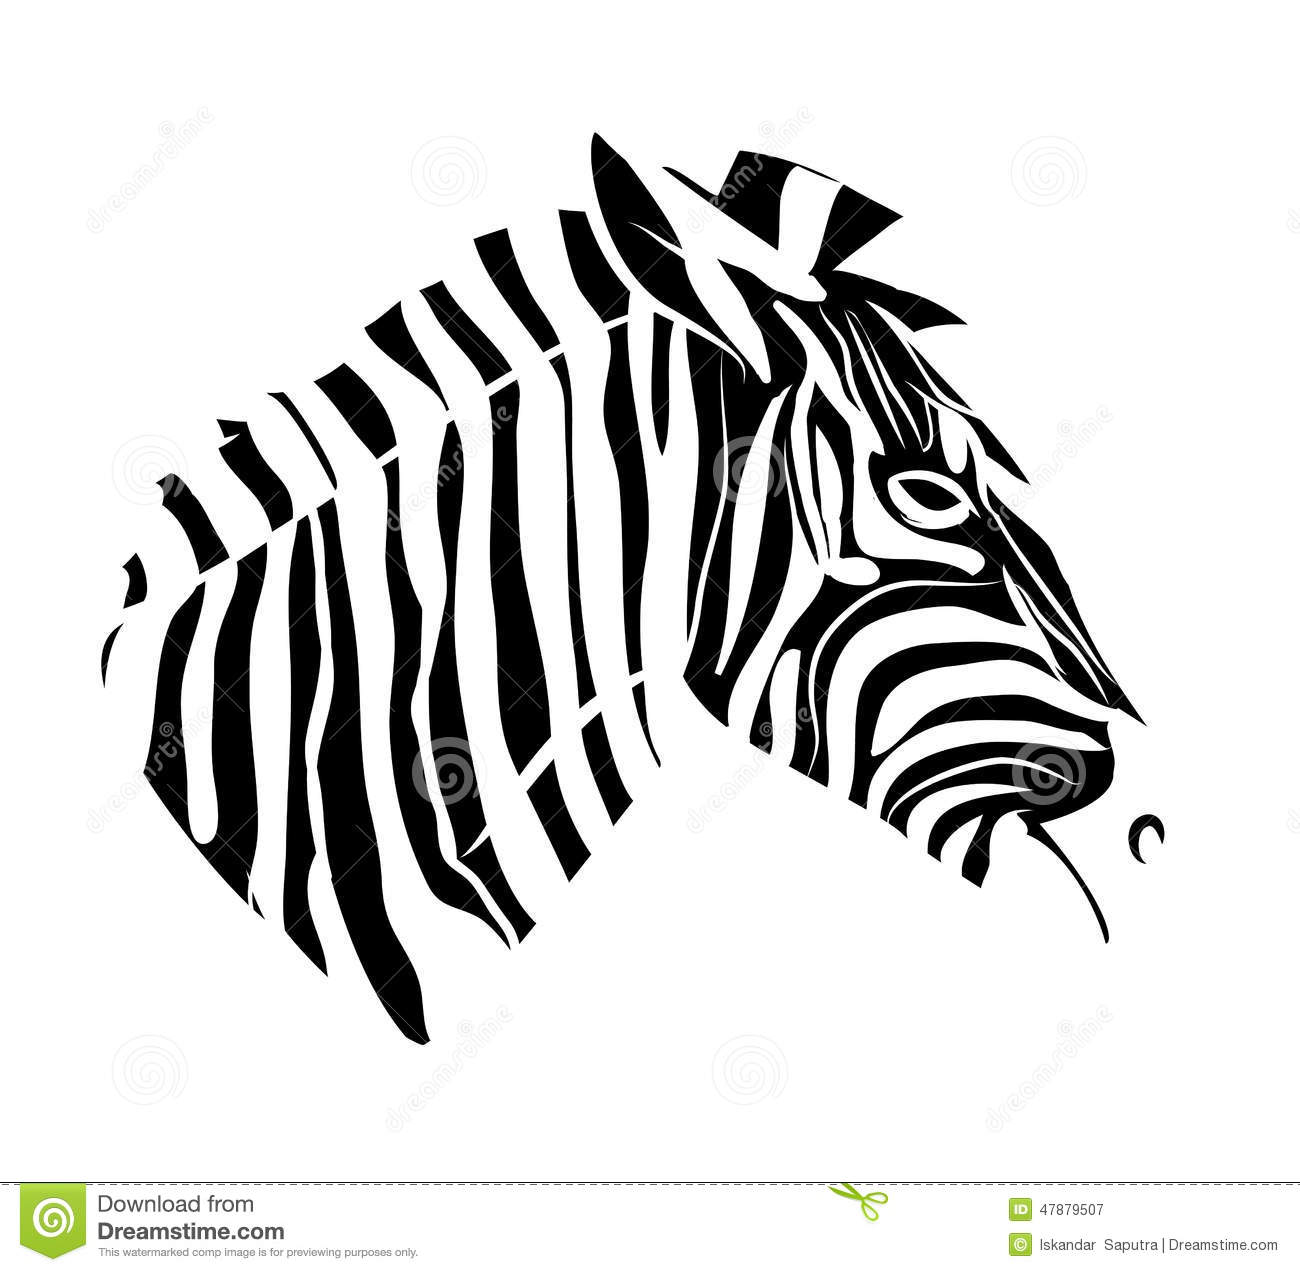 zebra head tattoo stock illustration image 47879507. Black Bedroom Furniture Sets. Home Design Ideas